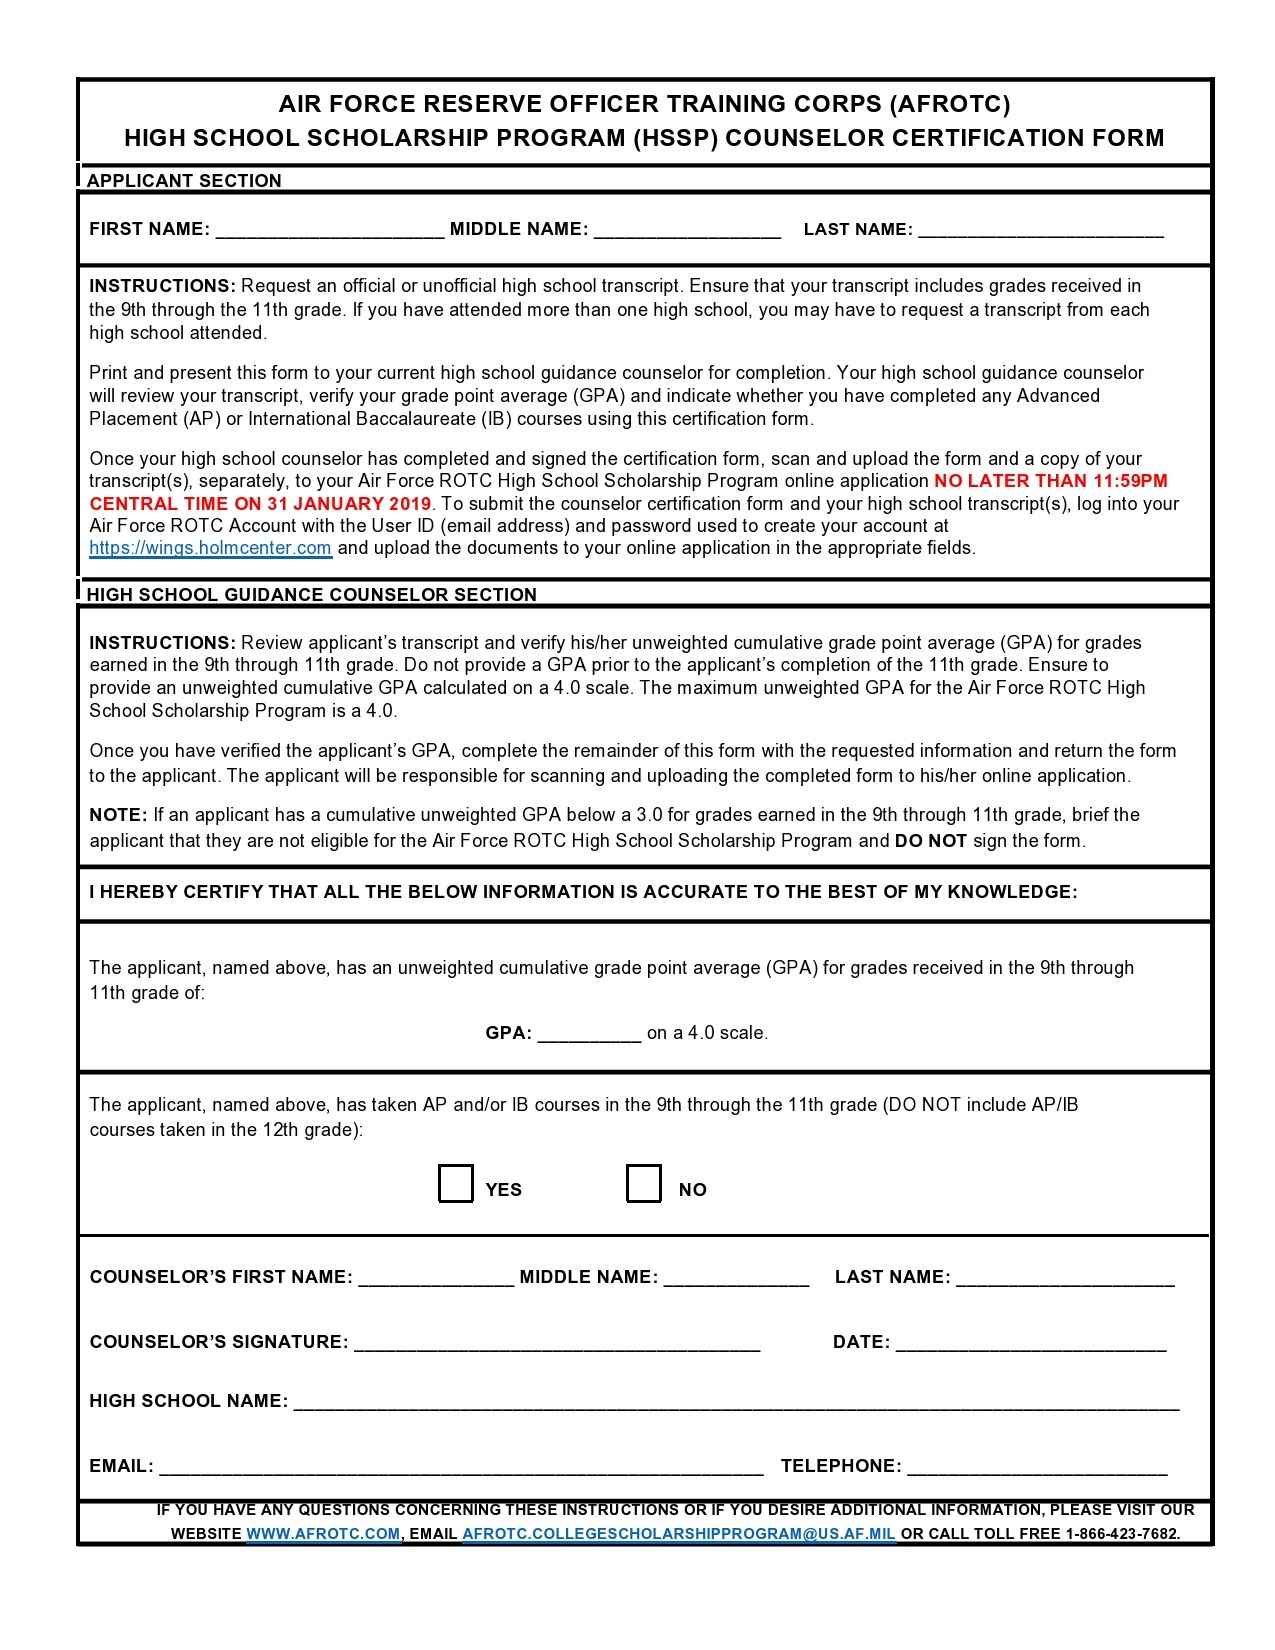 Army Counseling Forms